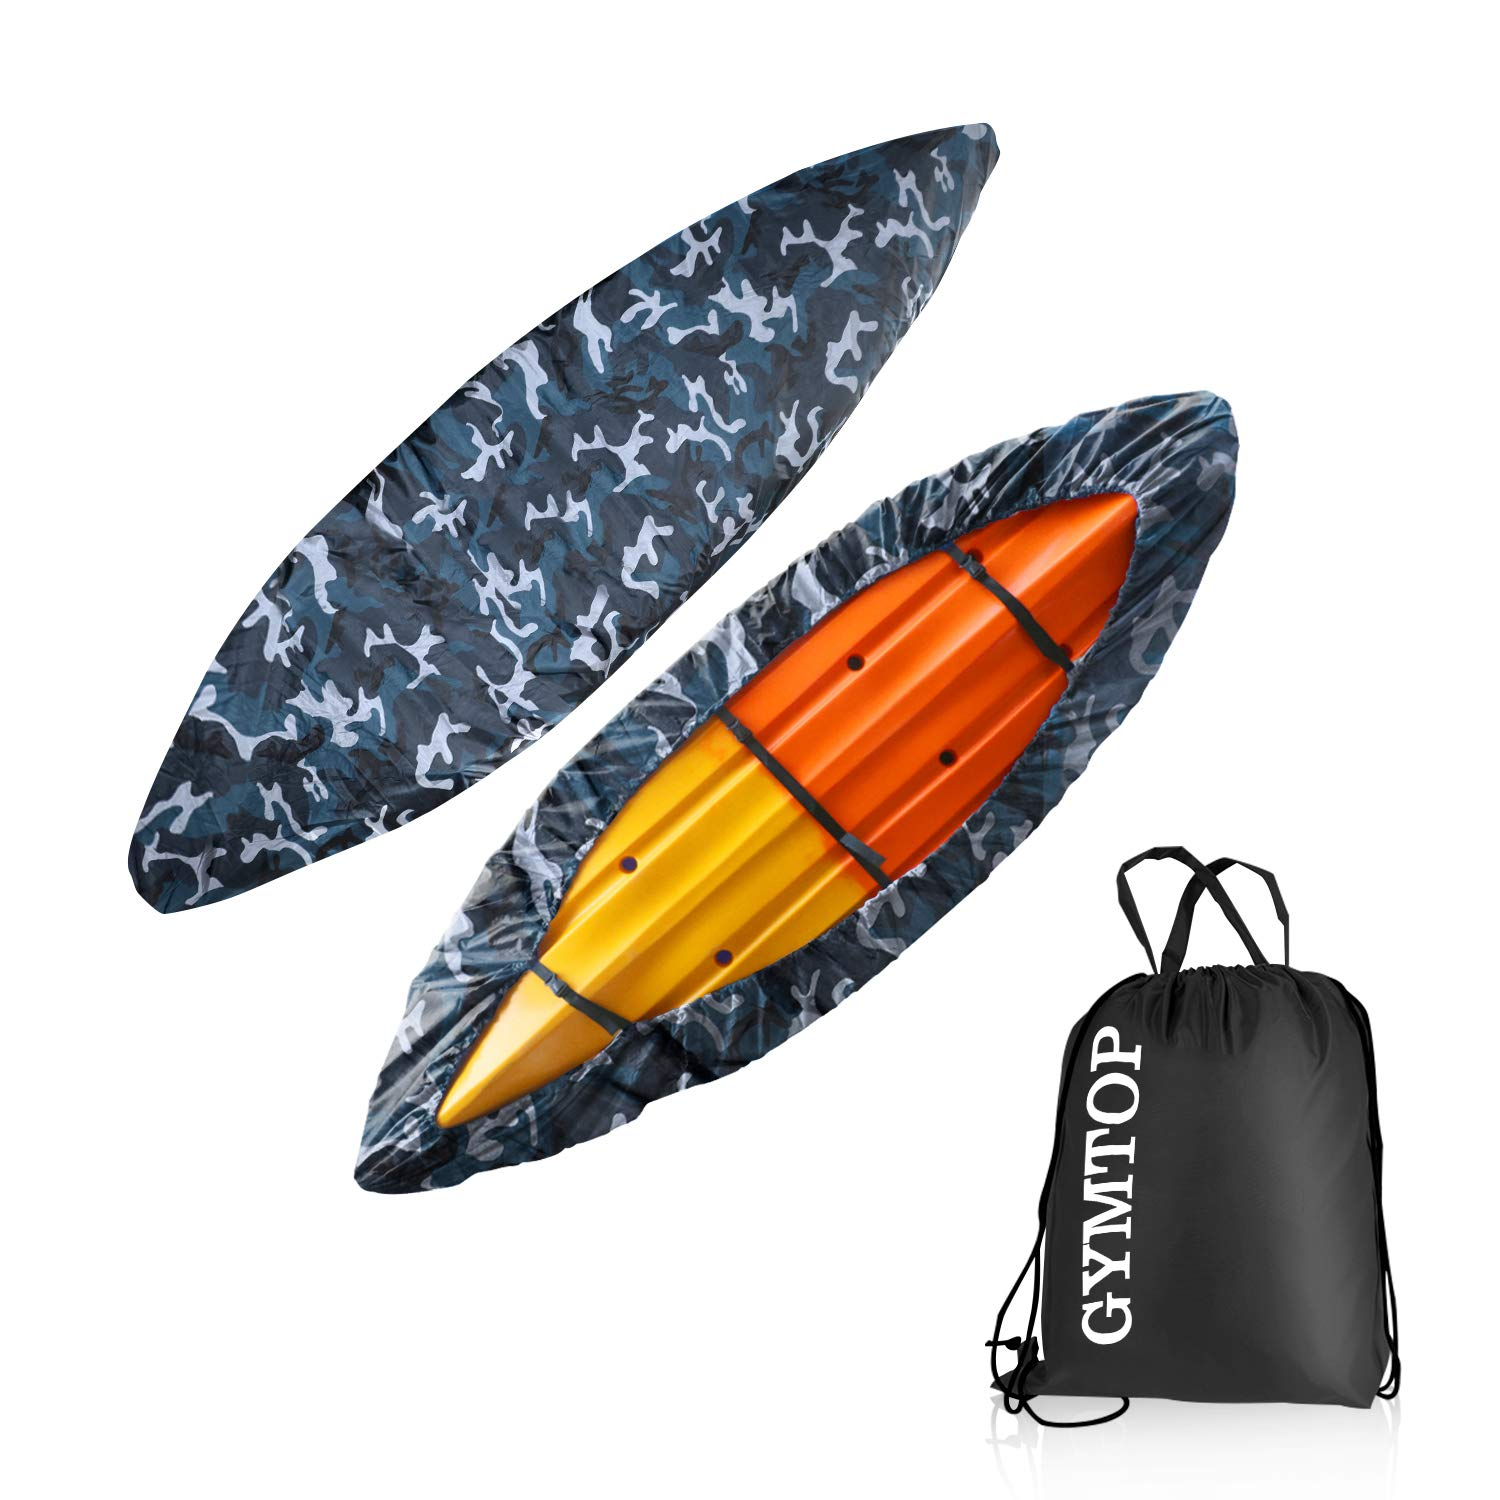 GYMTOP 7.8-18ft Waterproof Kayak Canoe Cover-Storage Dust Cover UV Protection Sunblock Shield for Fishing Boat/Kayak/Canoe 7 Sizes [Choose Color] (Ocean Camo(Upgraded), Suitable for 10.8-12ft Kayak) by GYMTOP